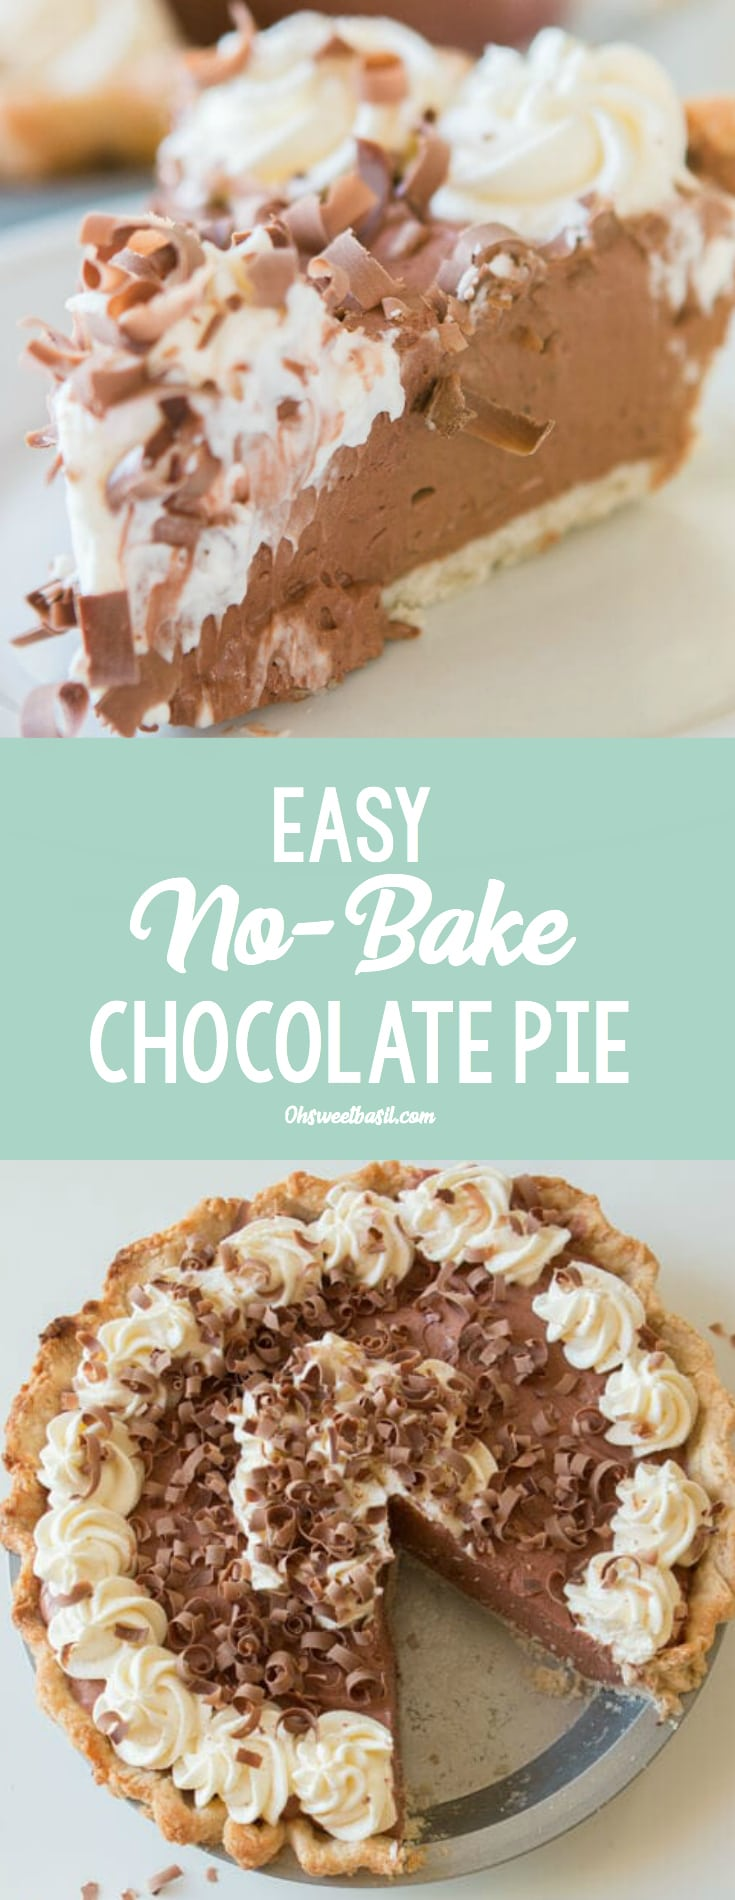 A piece of the best homemade chocolate pie with whipped cream and chocolate shavings on top